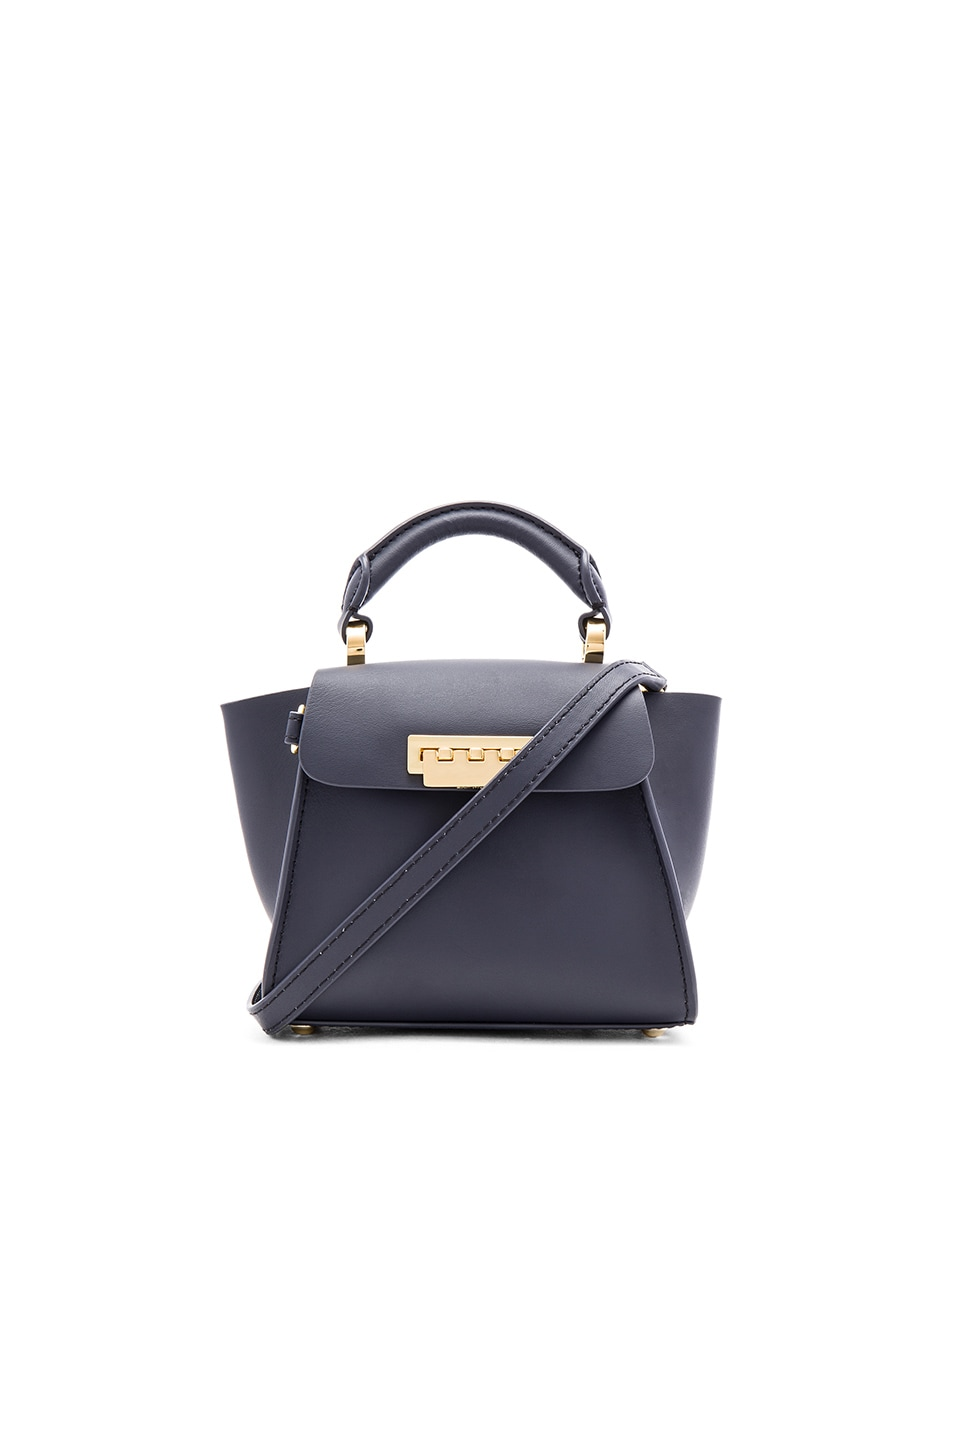 Zac Zac Posen Eartha Iconic Top Handle Mini Bag in Navy